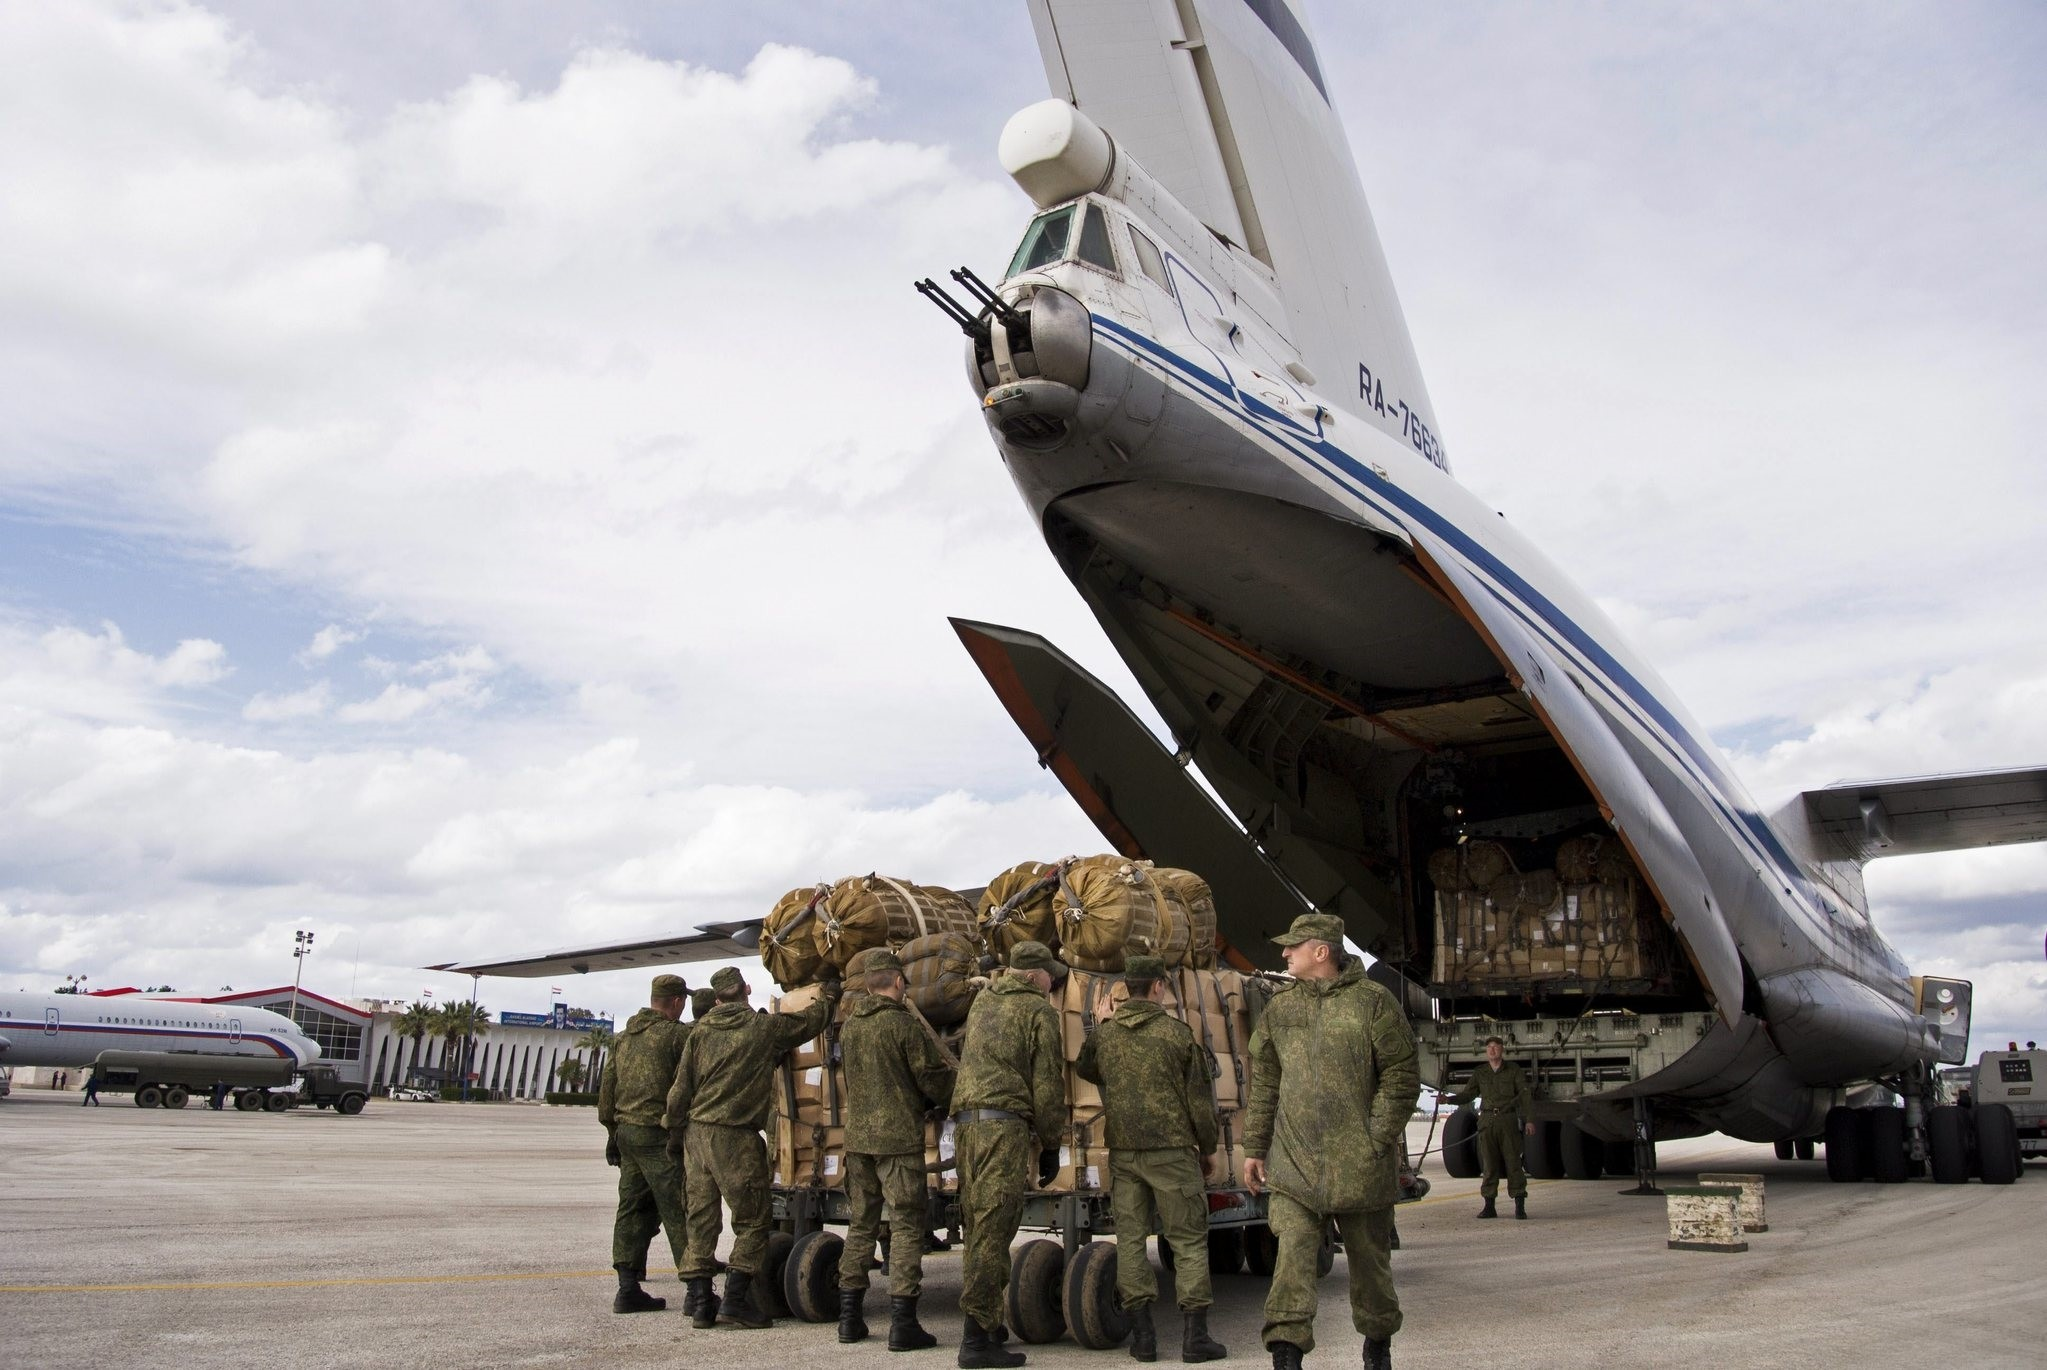 Russian air force personnel prepare to load humanitarian cargo on board a Syrian Il-76 plane at Hemeimeem air base in Syria. ((AP Photo)